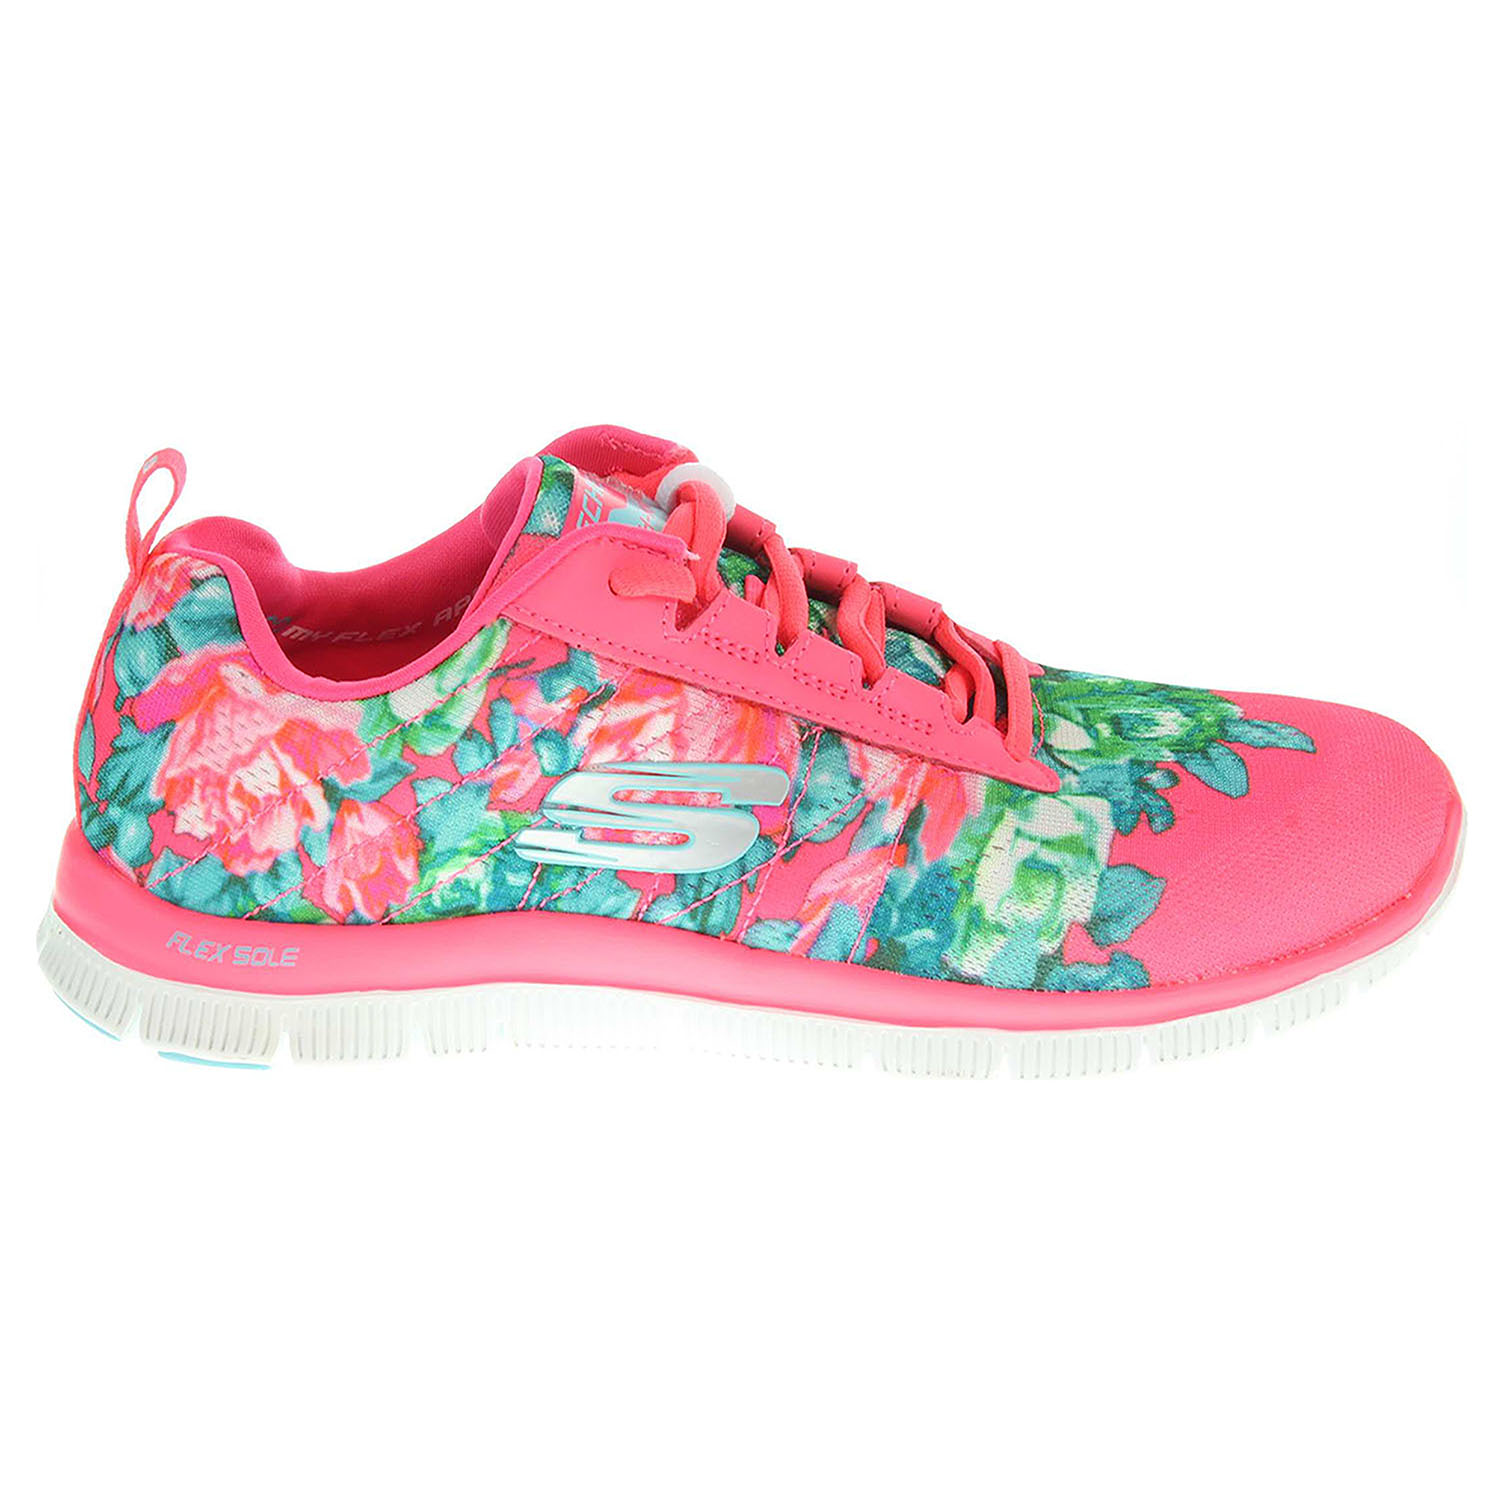 Ecco Skechers Wildflowers hot pink-multi 23900152